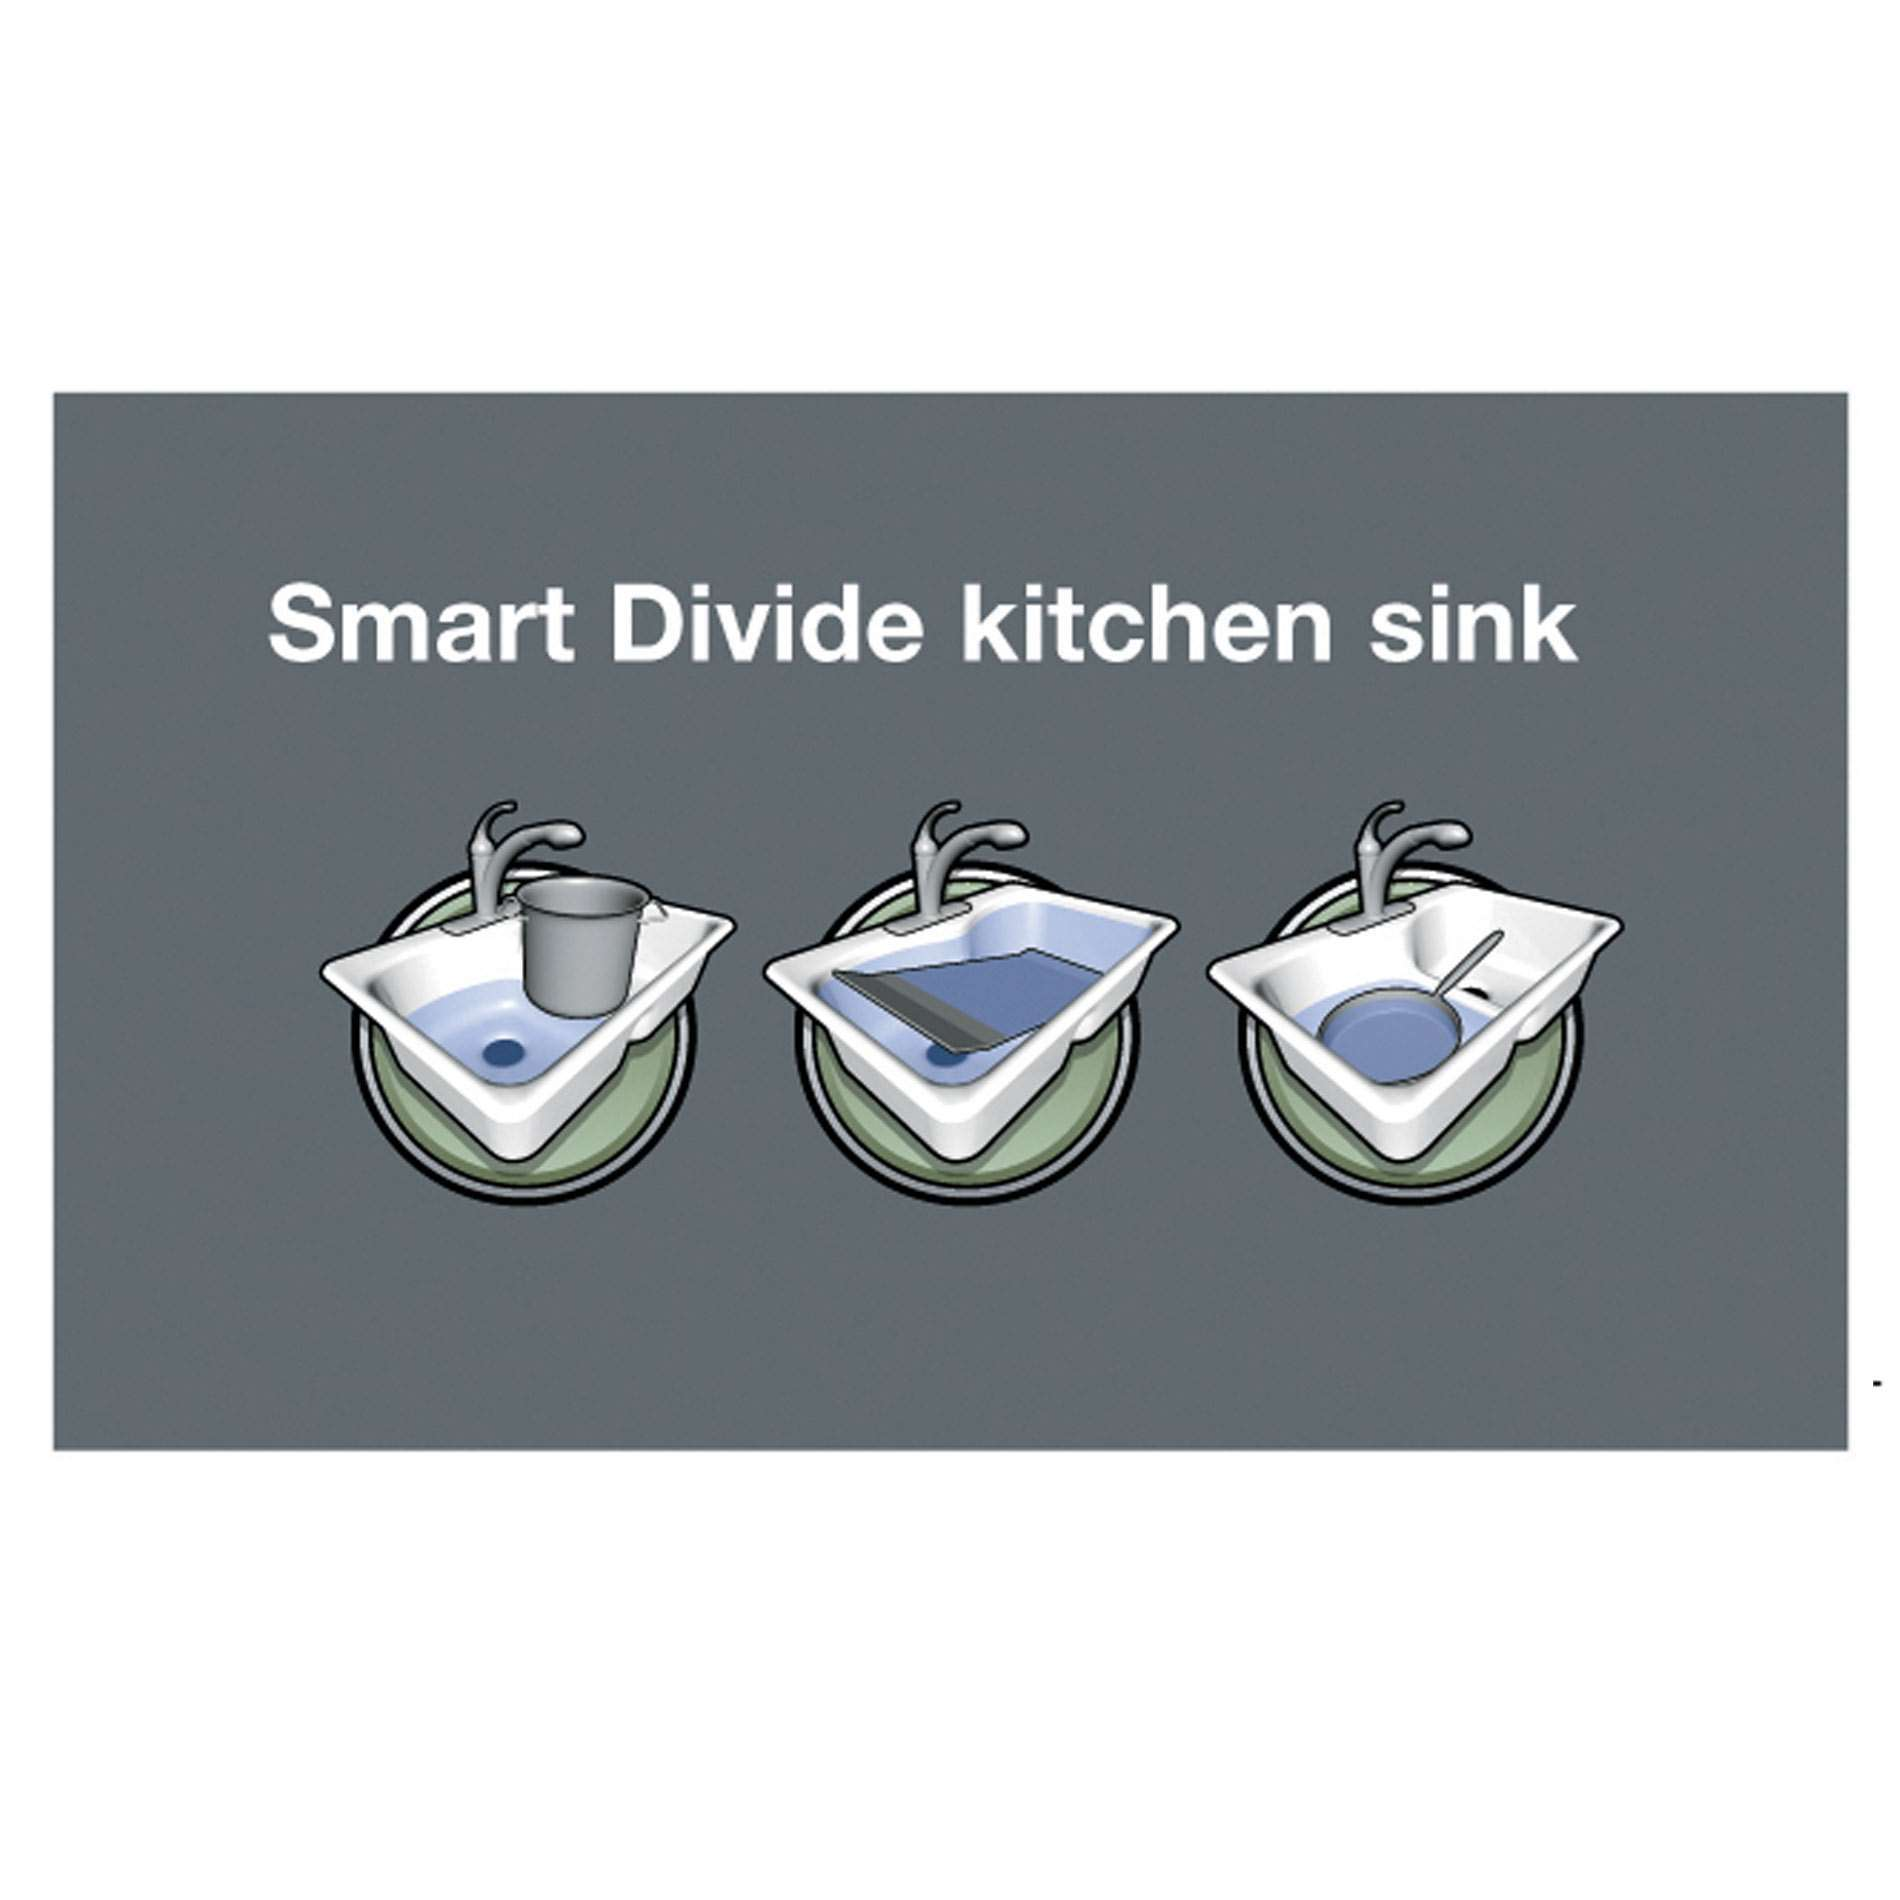 Picture Of Iron/Tones 6625 Smart Divide Cast Iron Sink